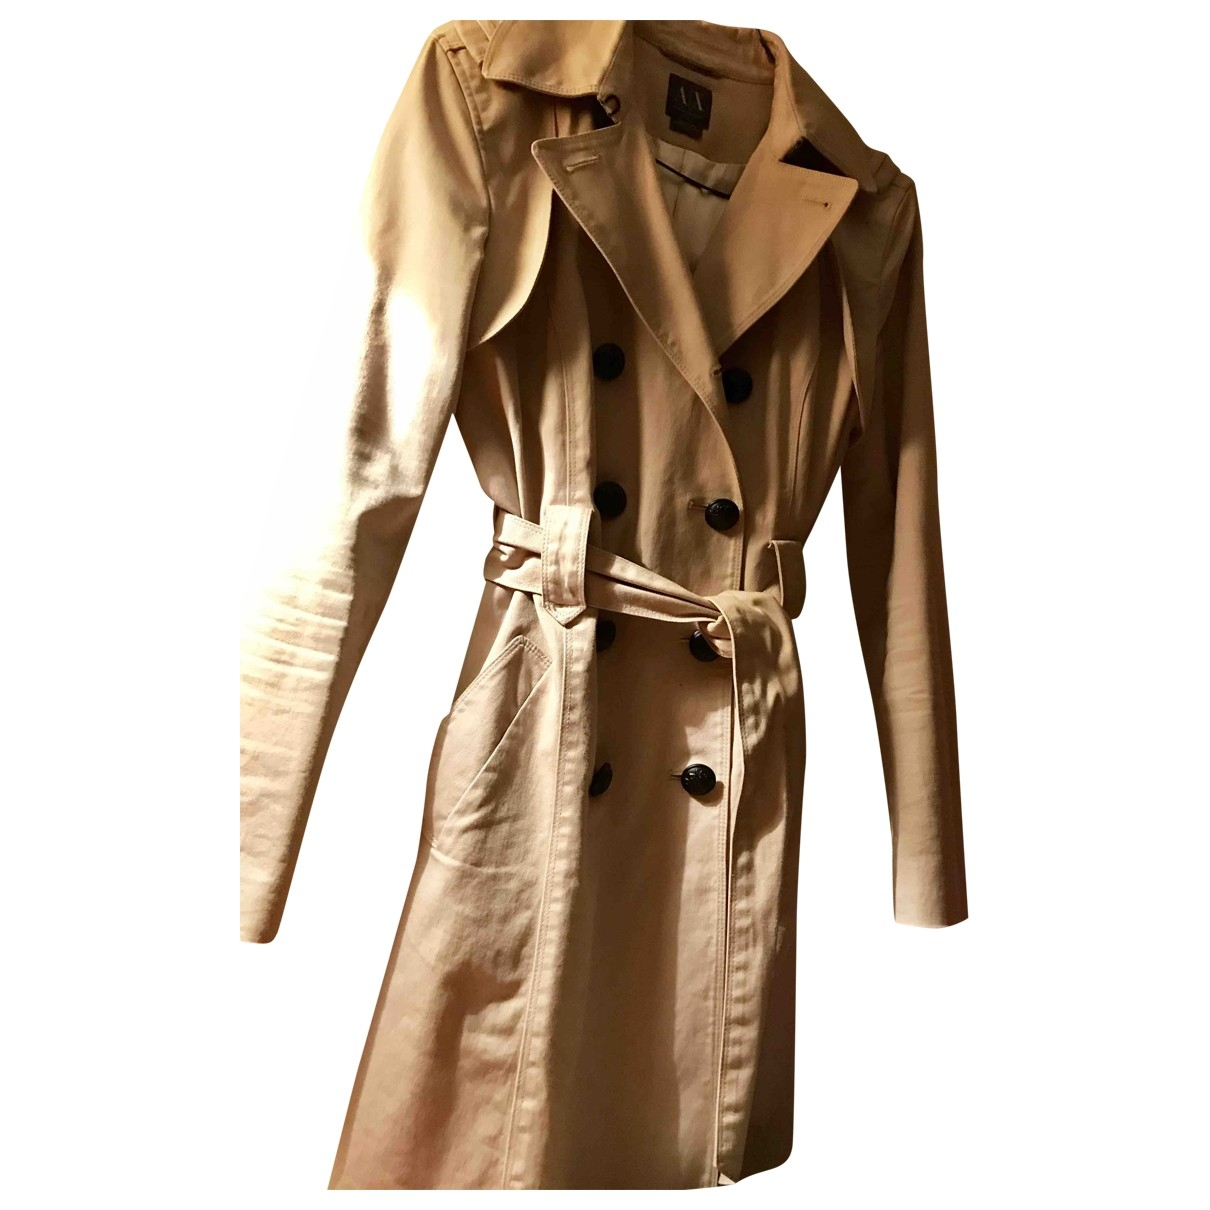 Emporio Armani \N Beige Trench coat for Women 36 FR